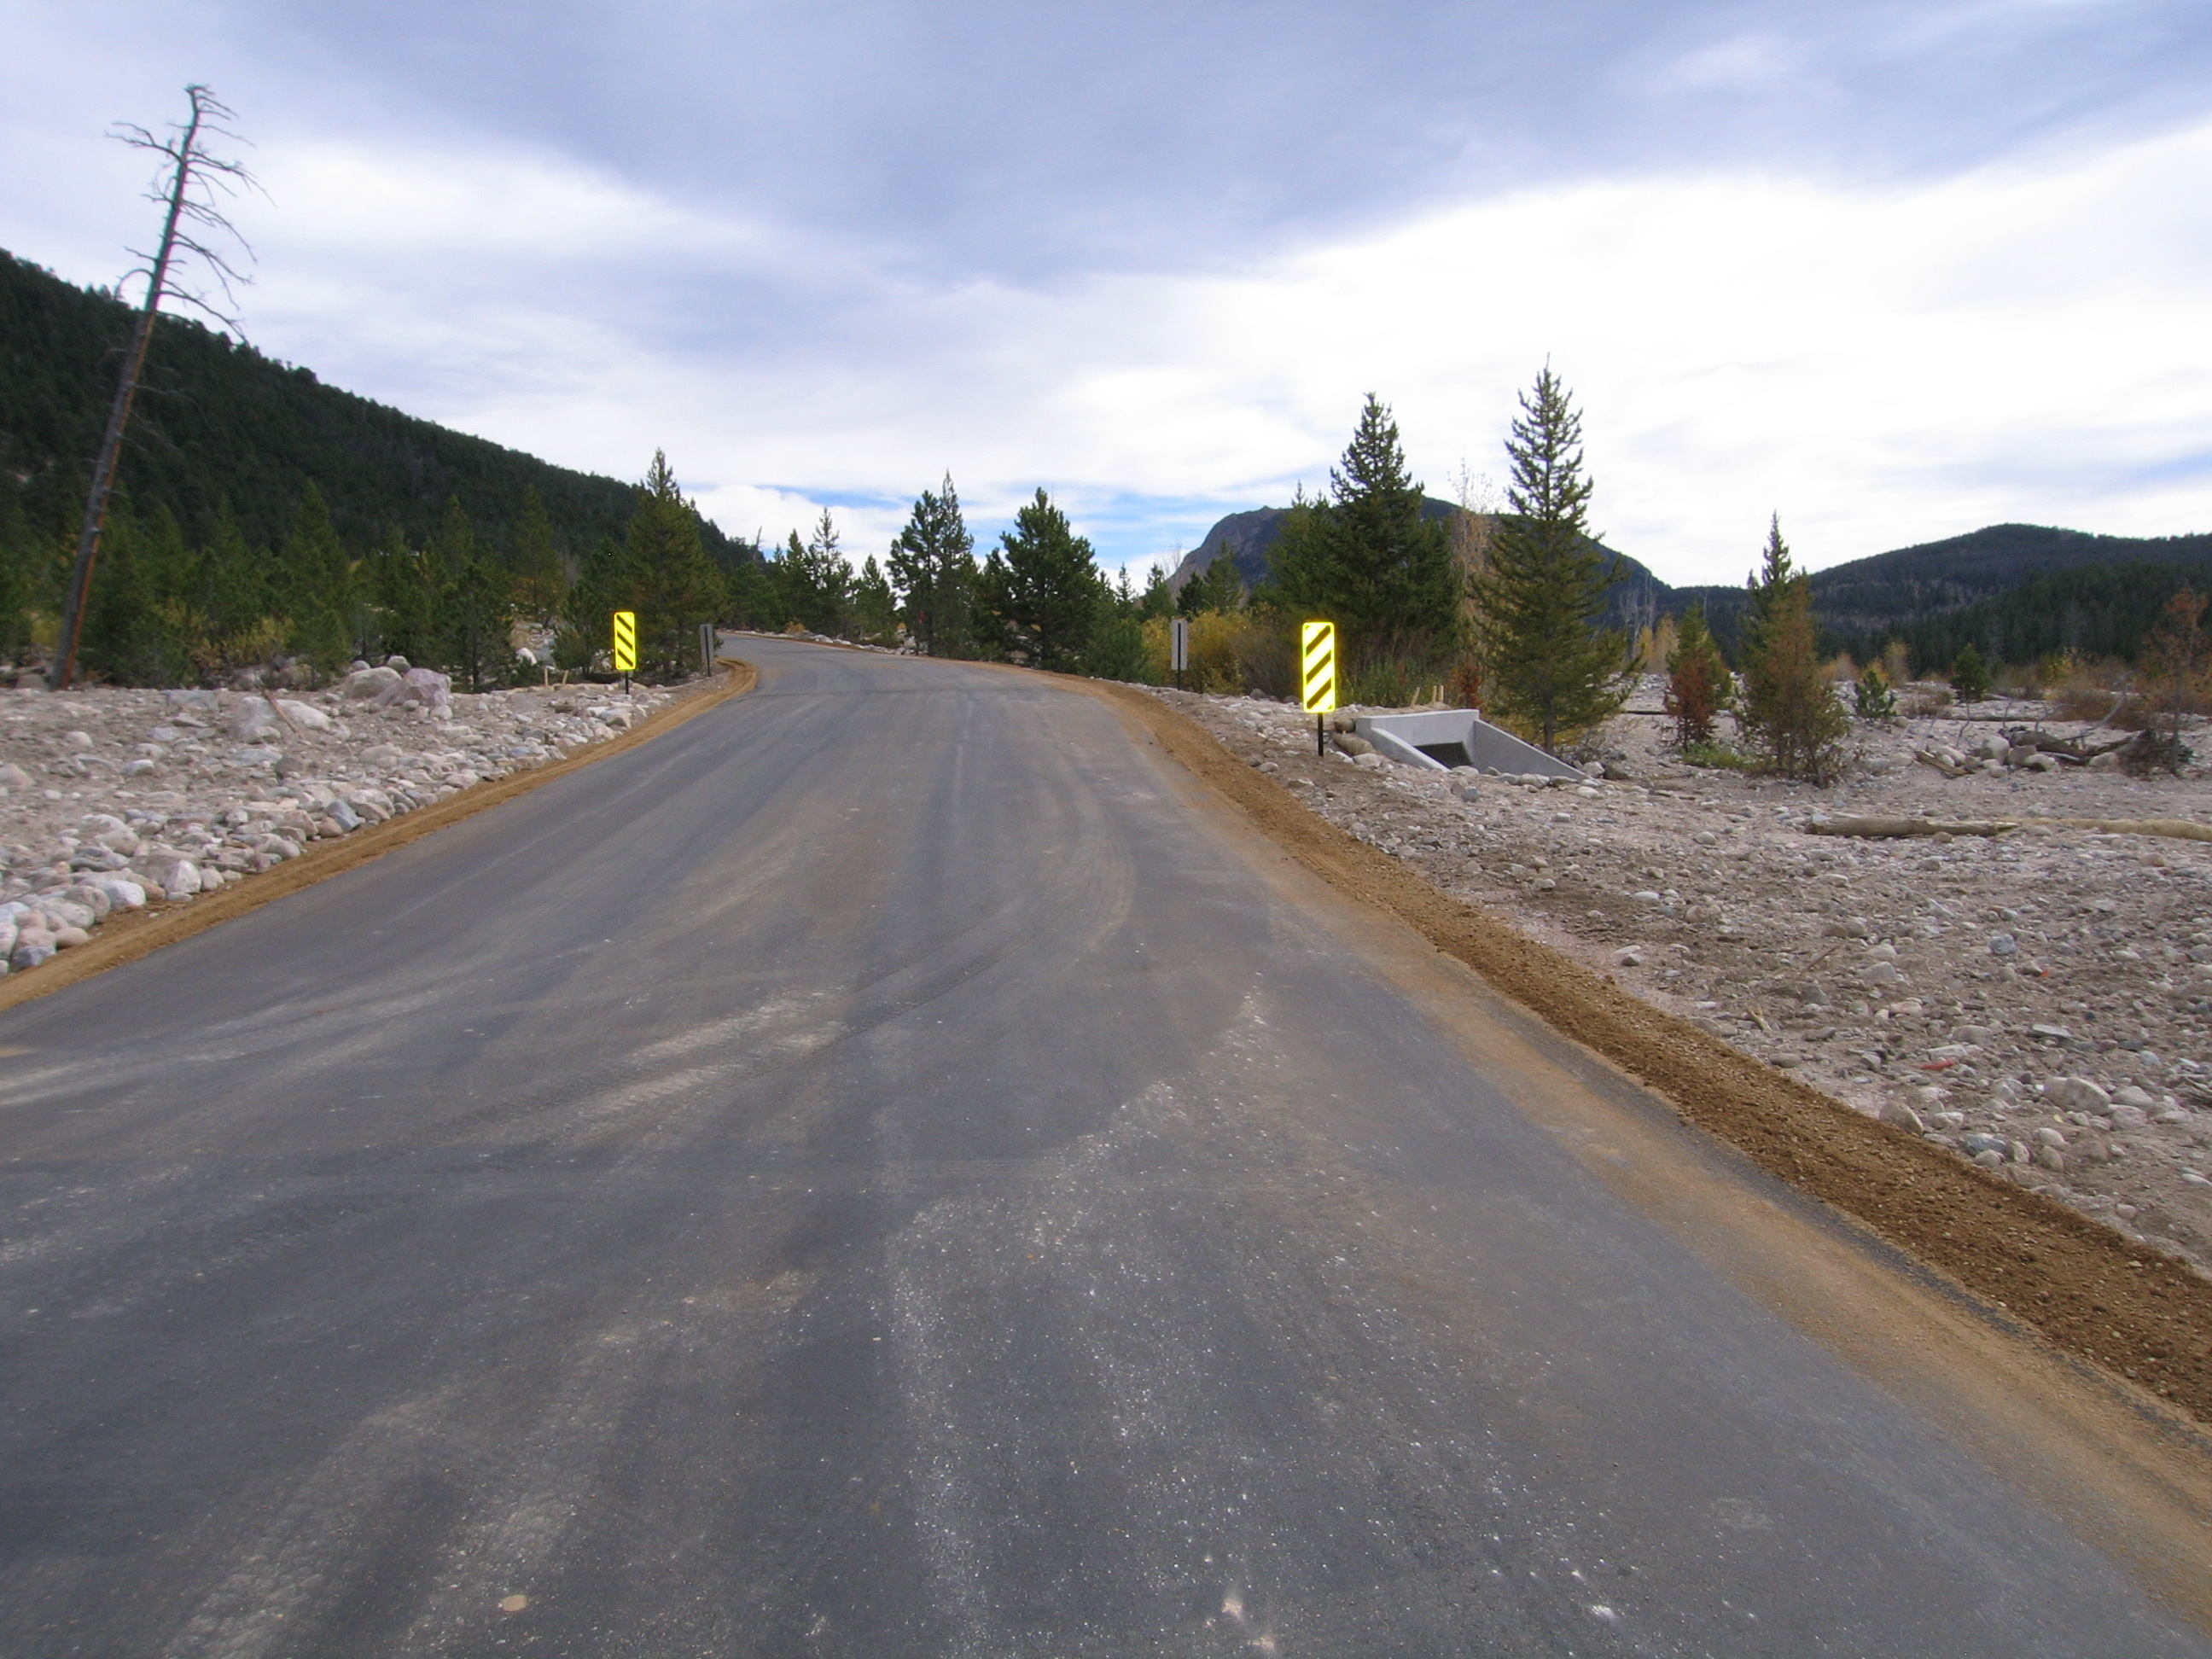 New pavement and culvert near Alluvial Fan